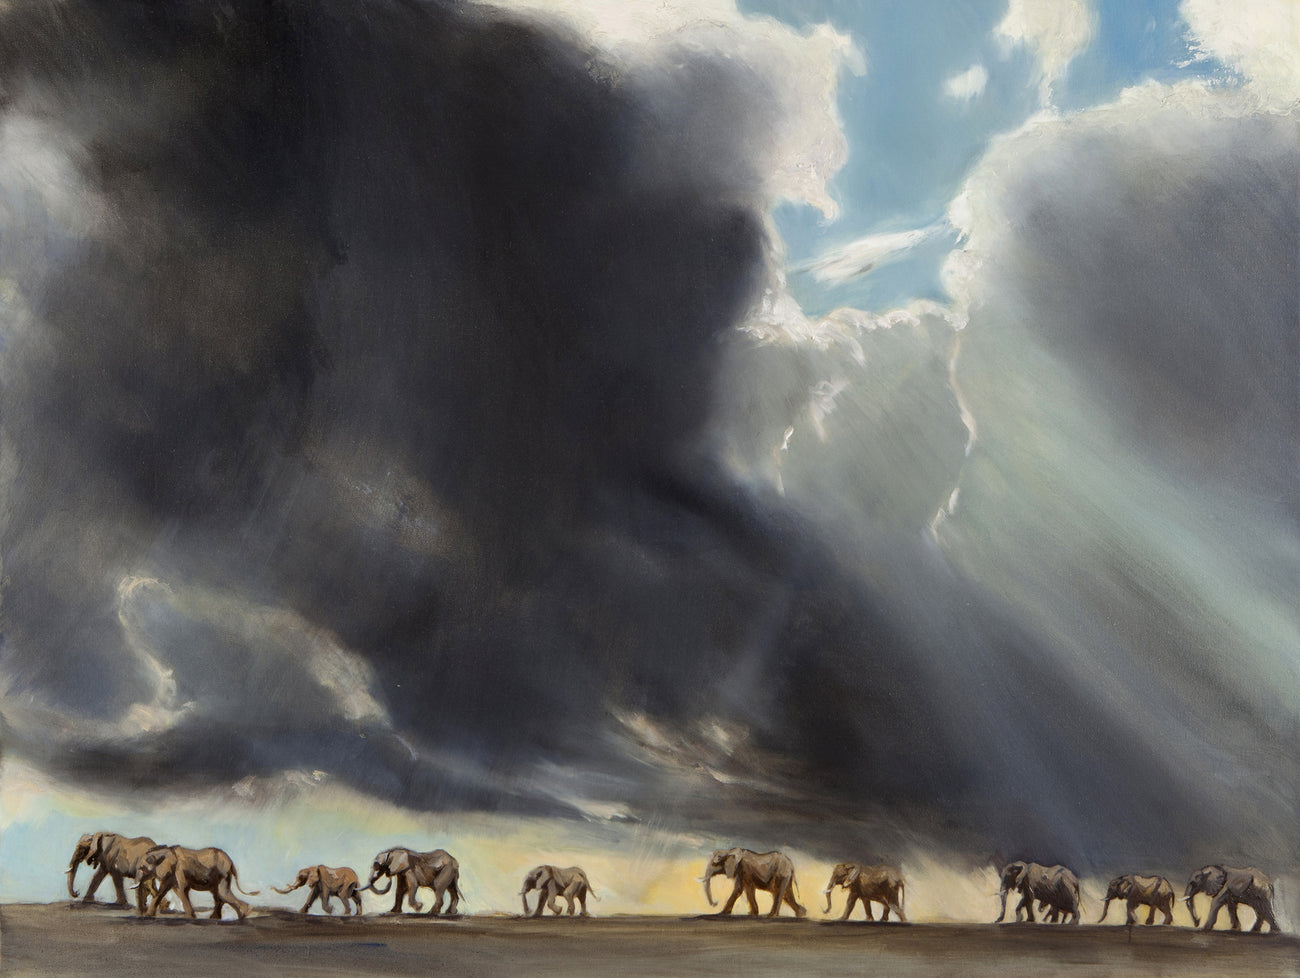 Elephants in the Storm